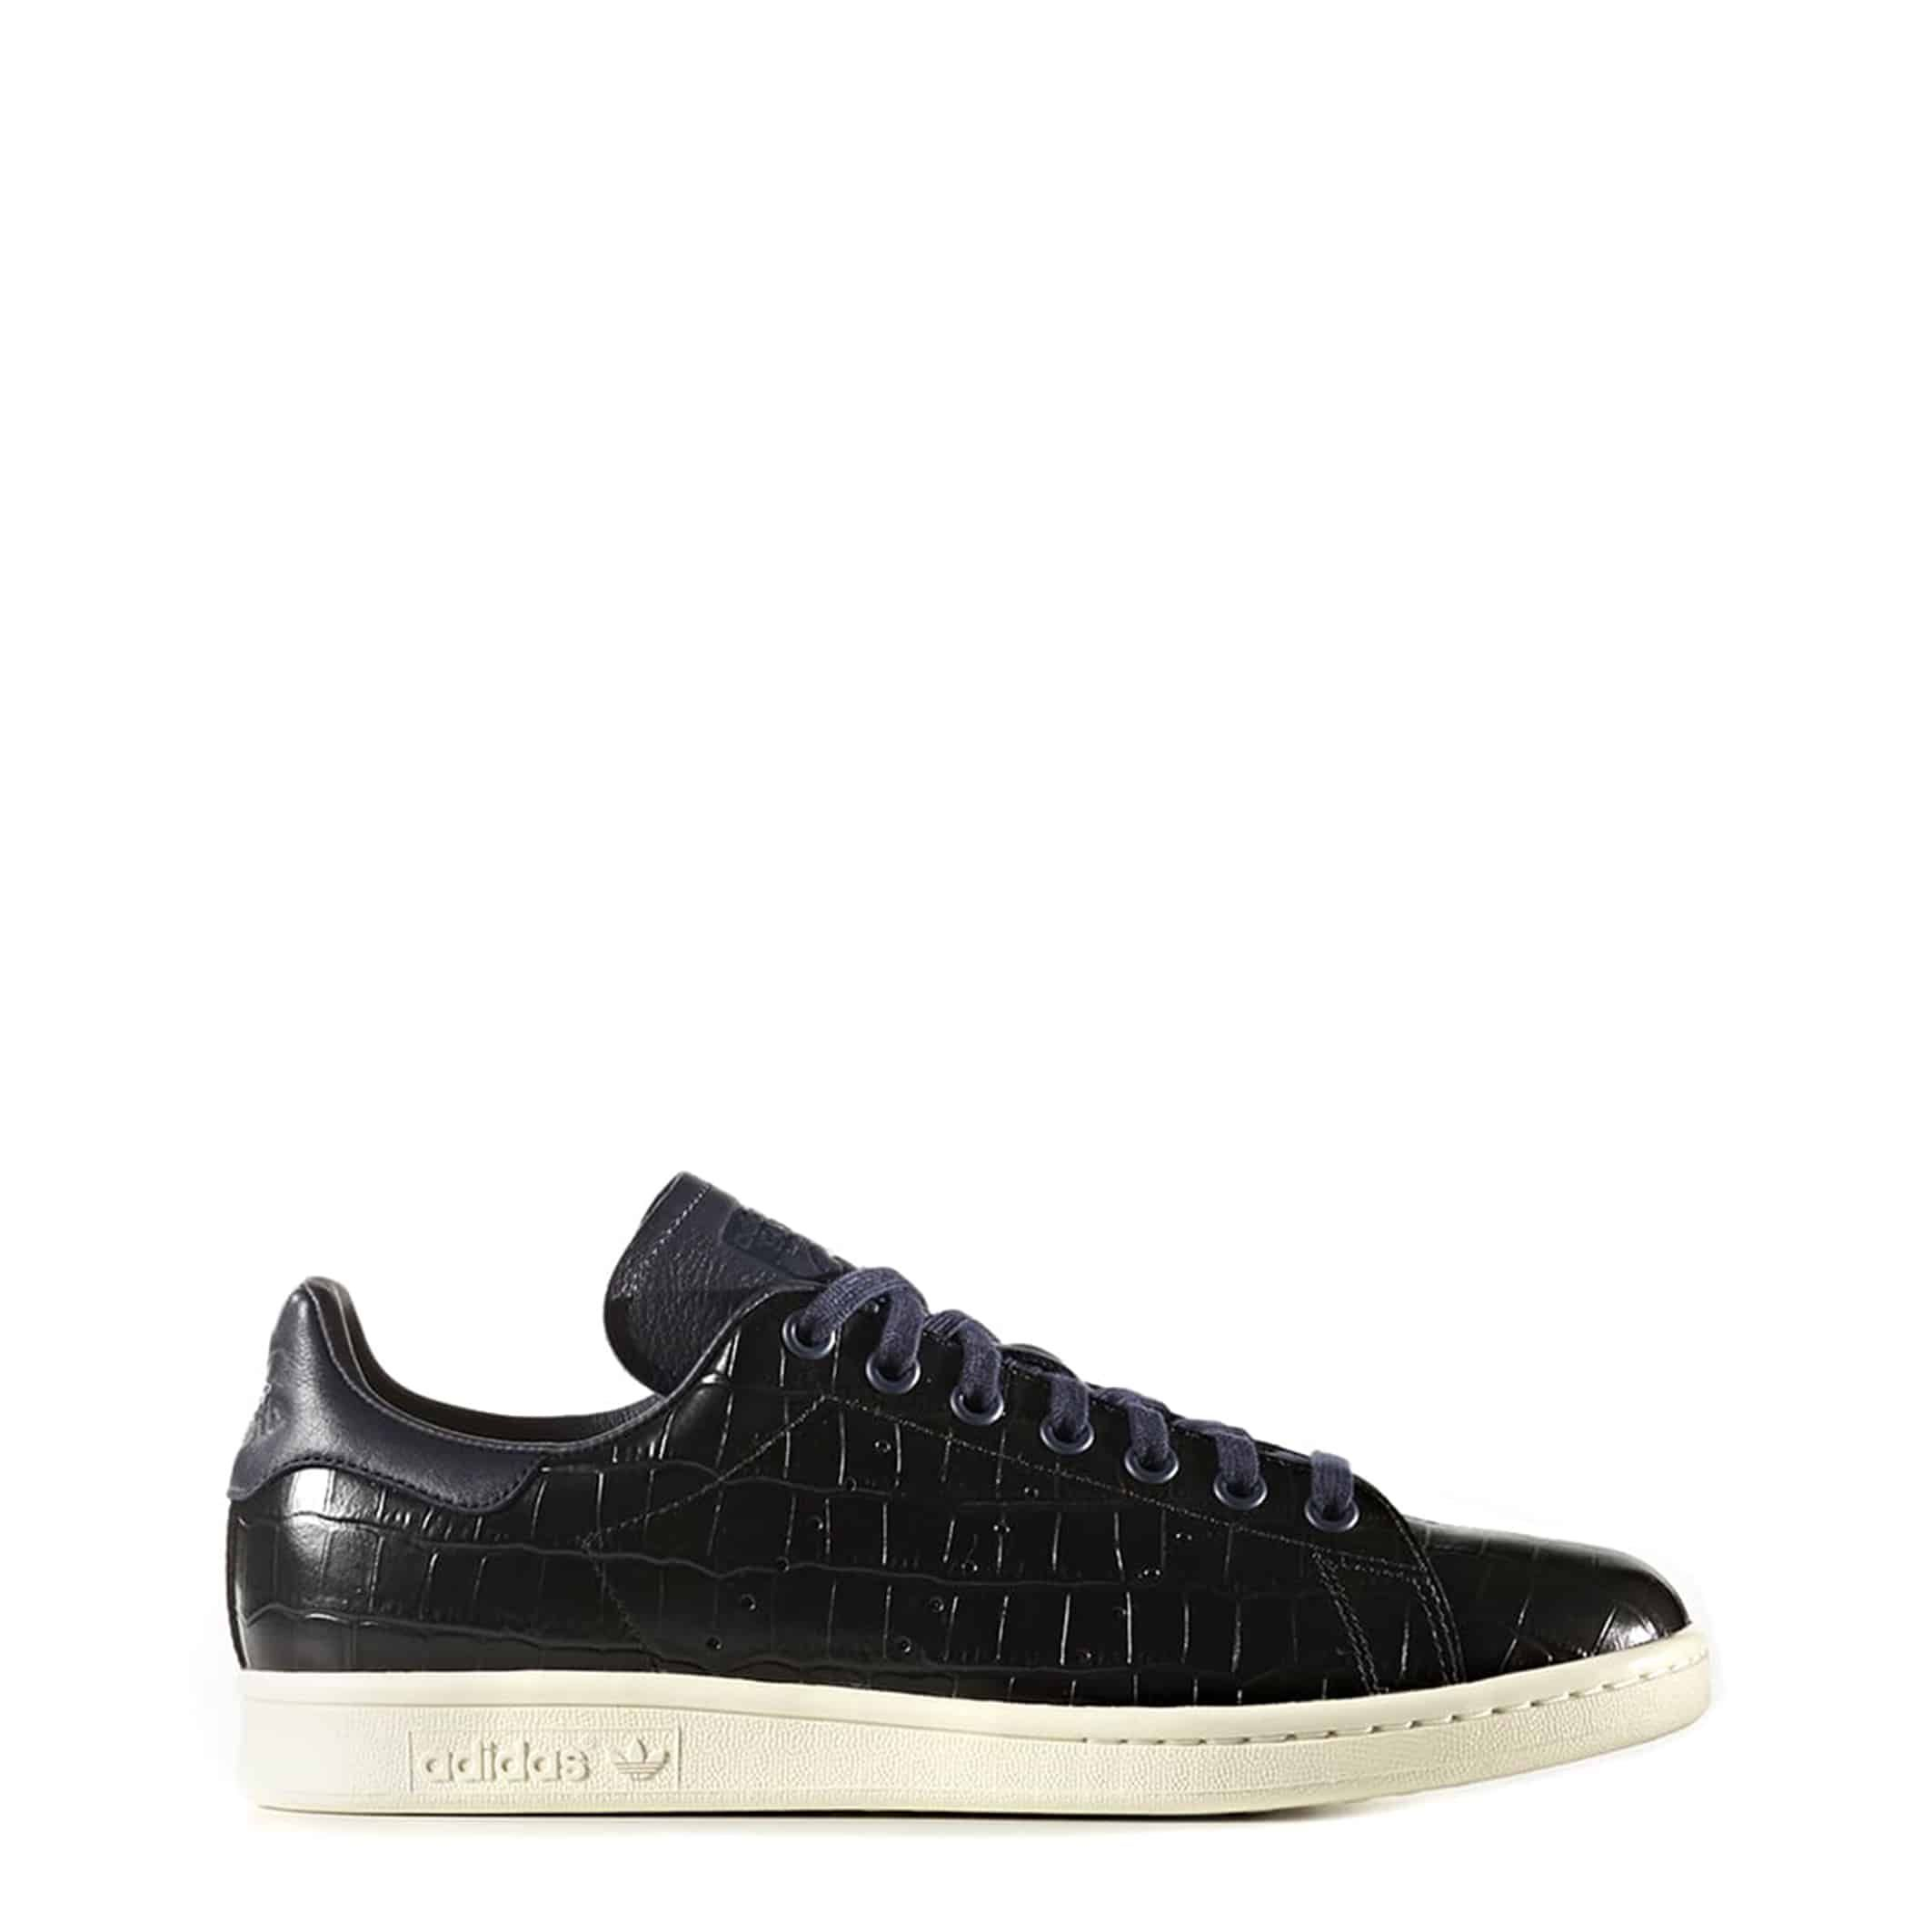 Chaussures Adidas – StanSmith